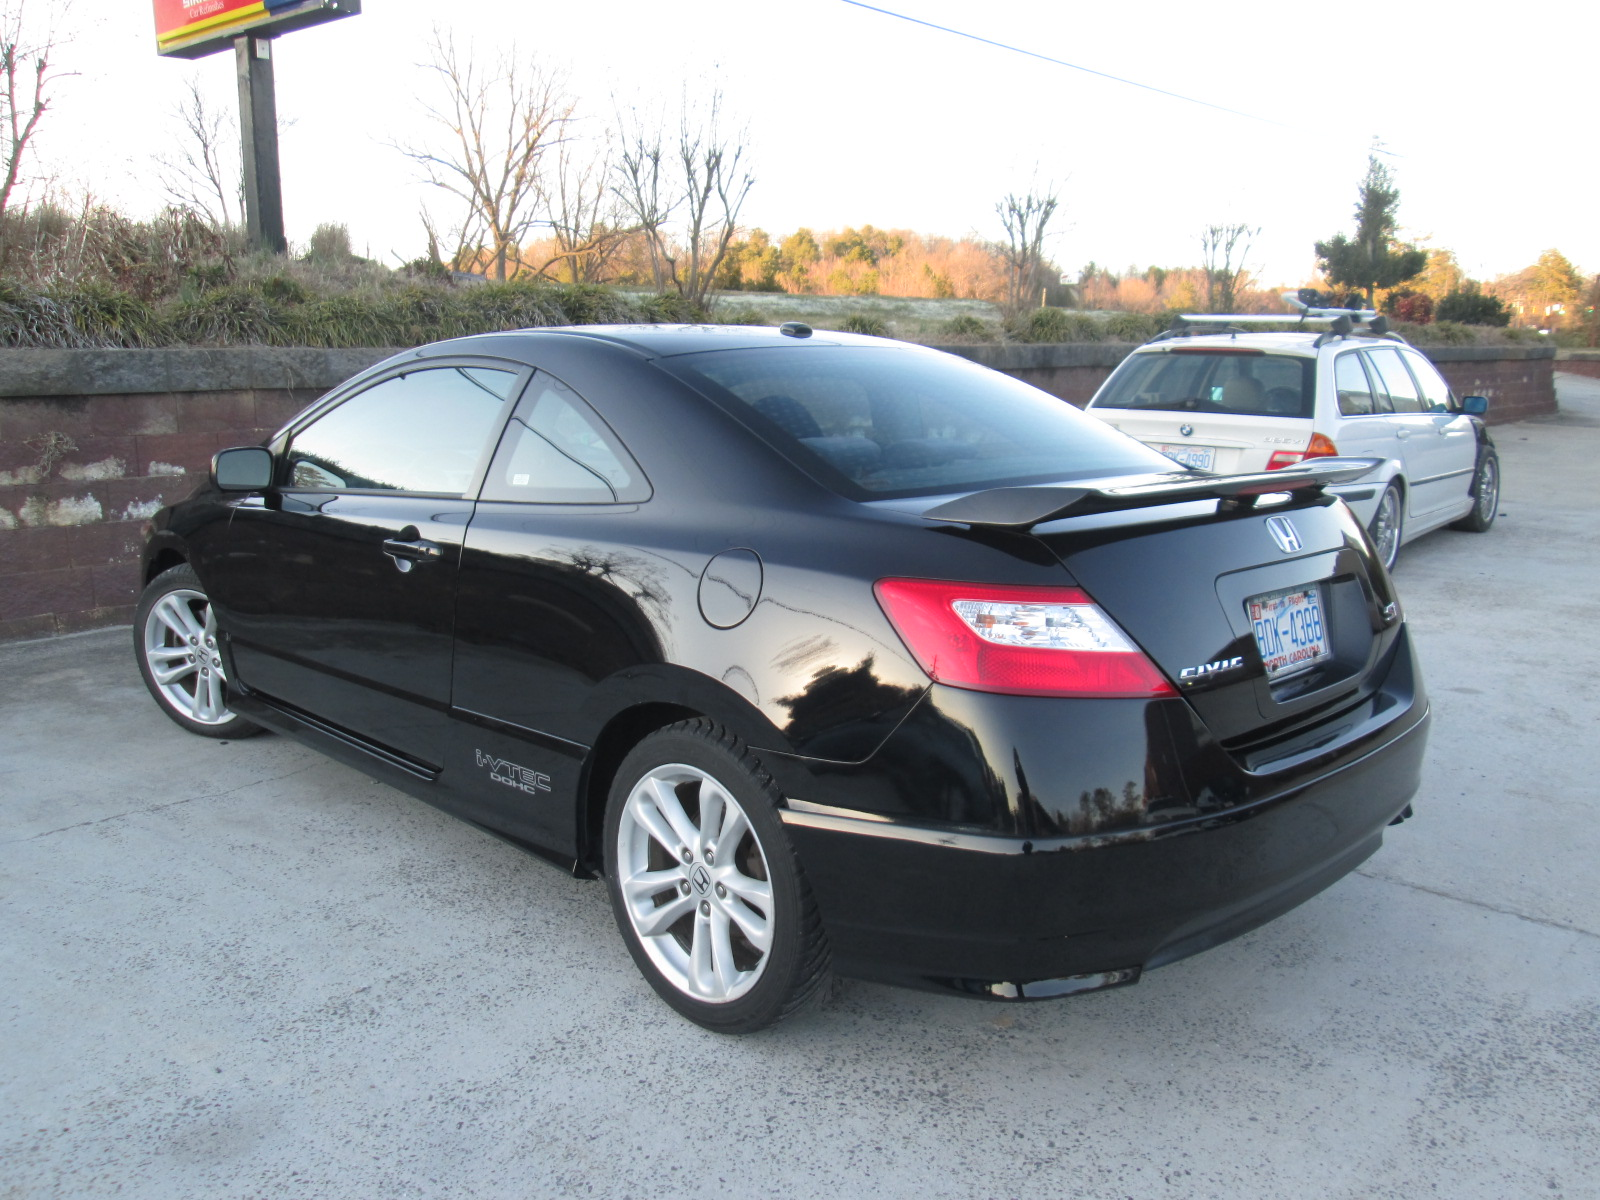 Used Honda Civic Si >> 2006 Honda Civic - Exterior Pictures - CarGurus